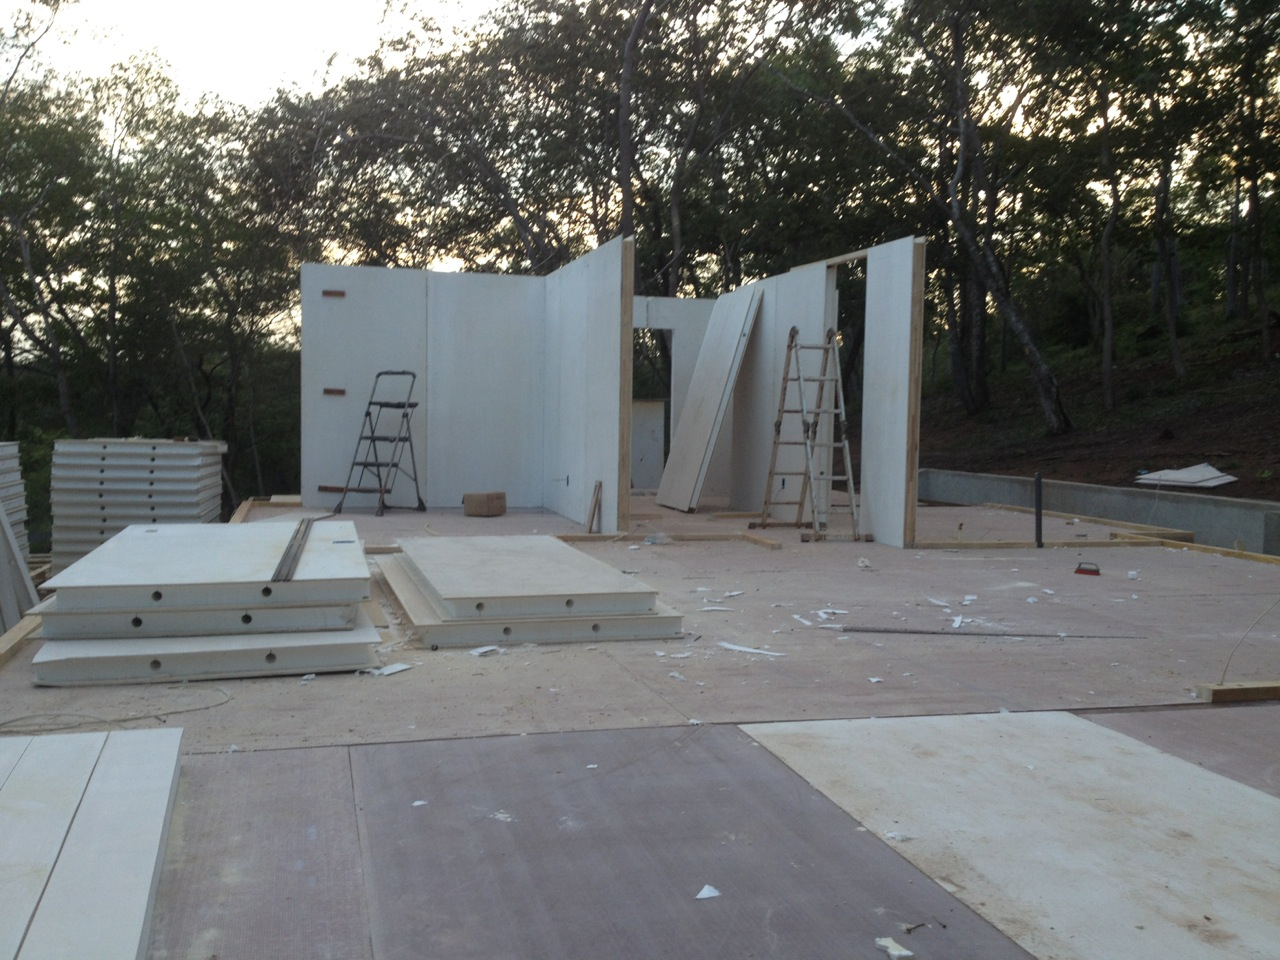 Walls up first two days